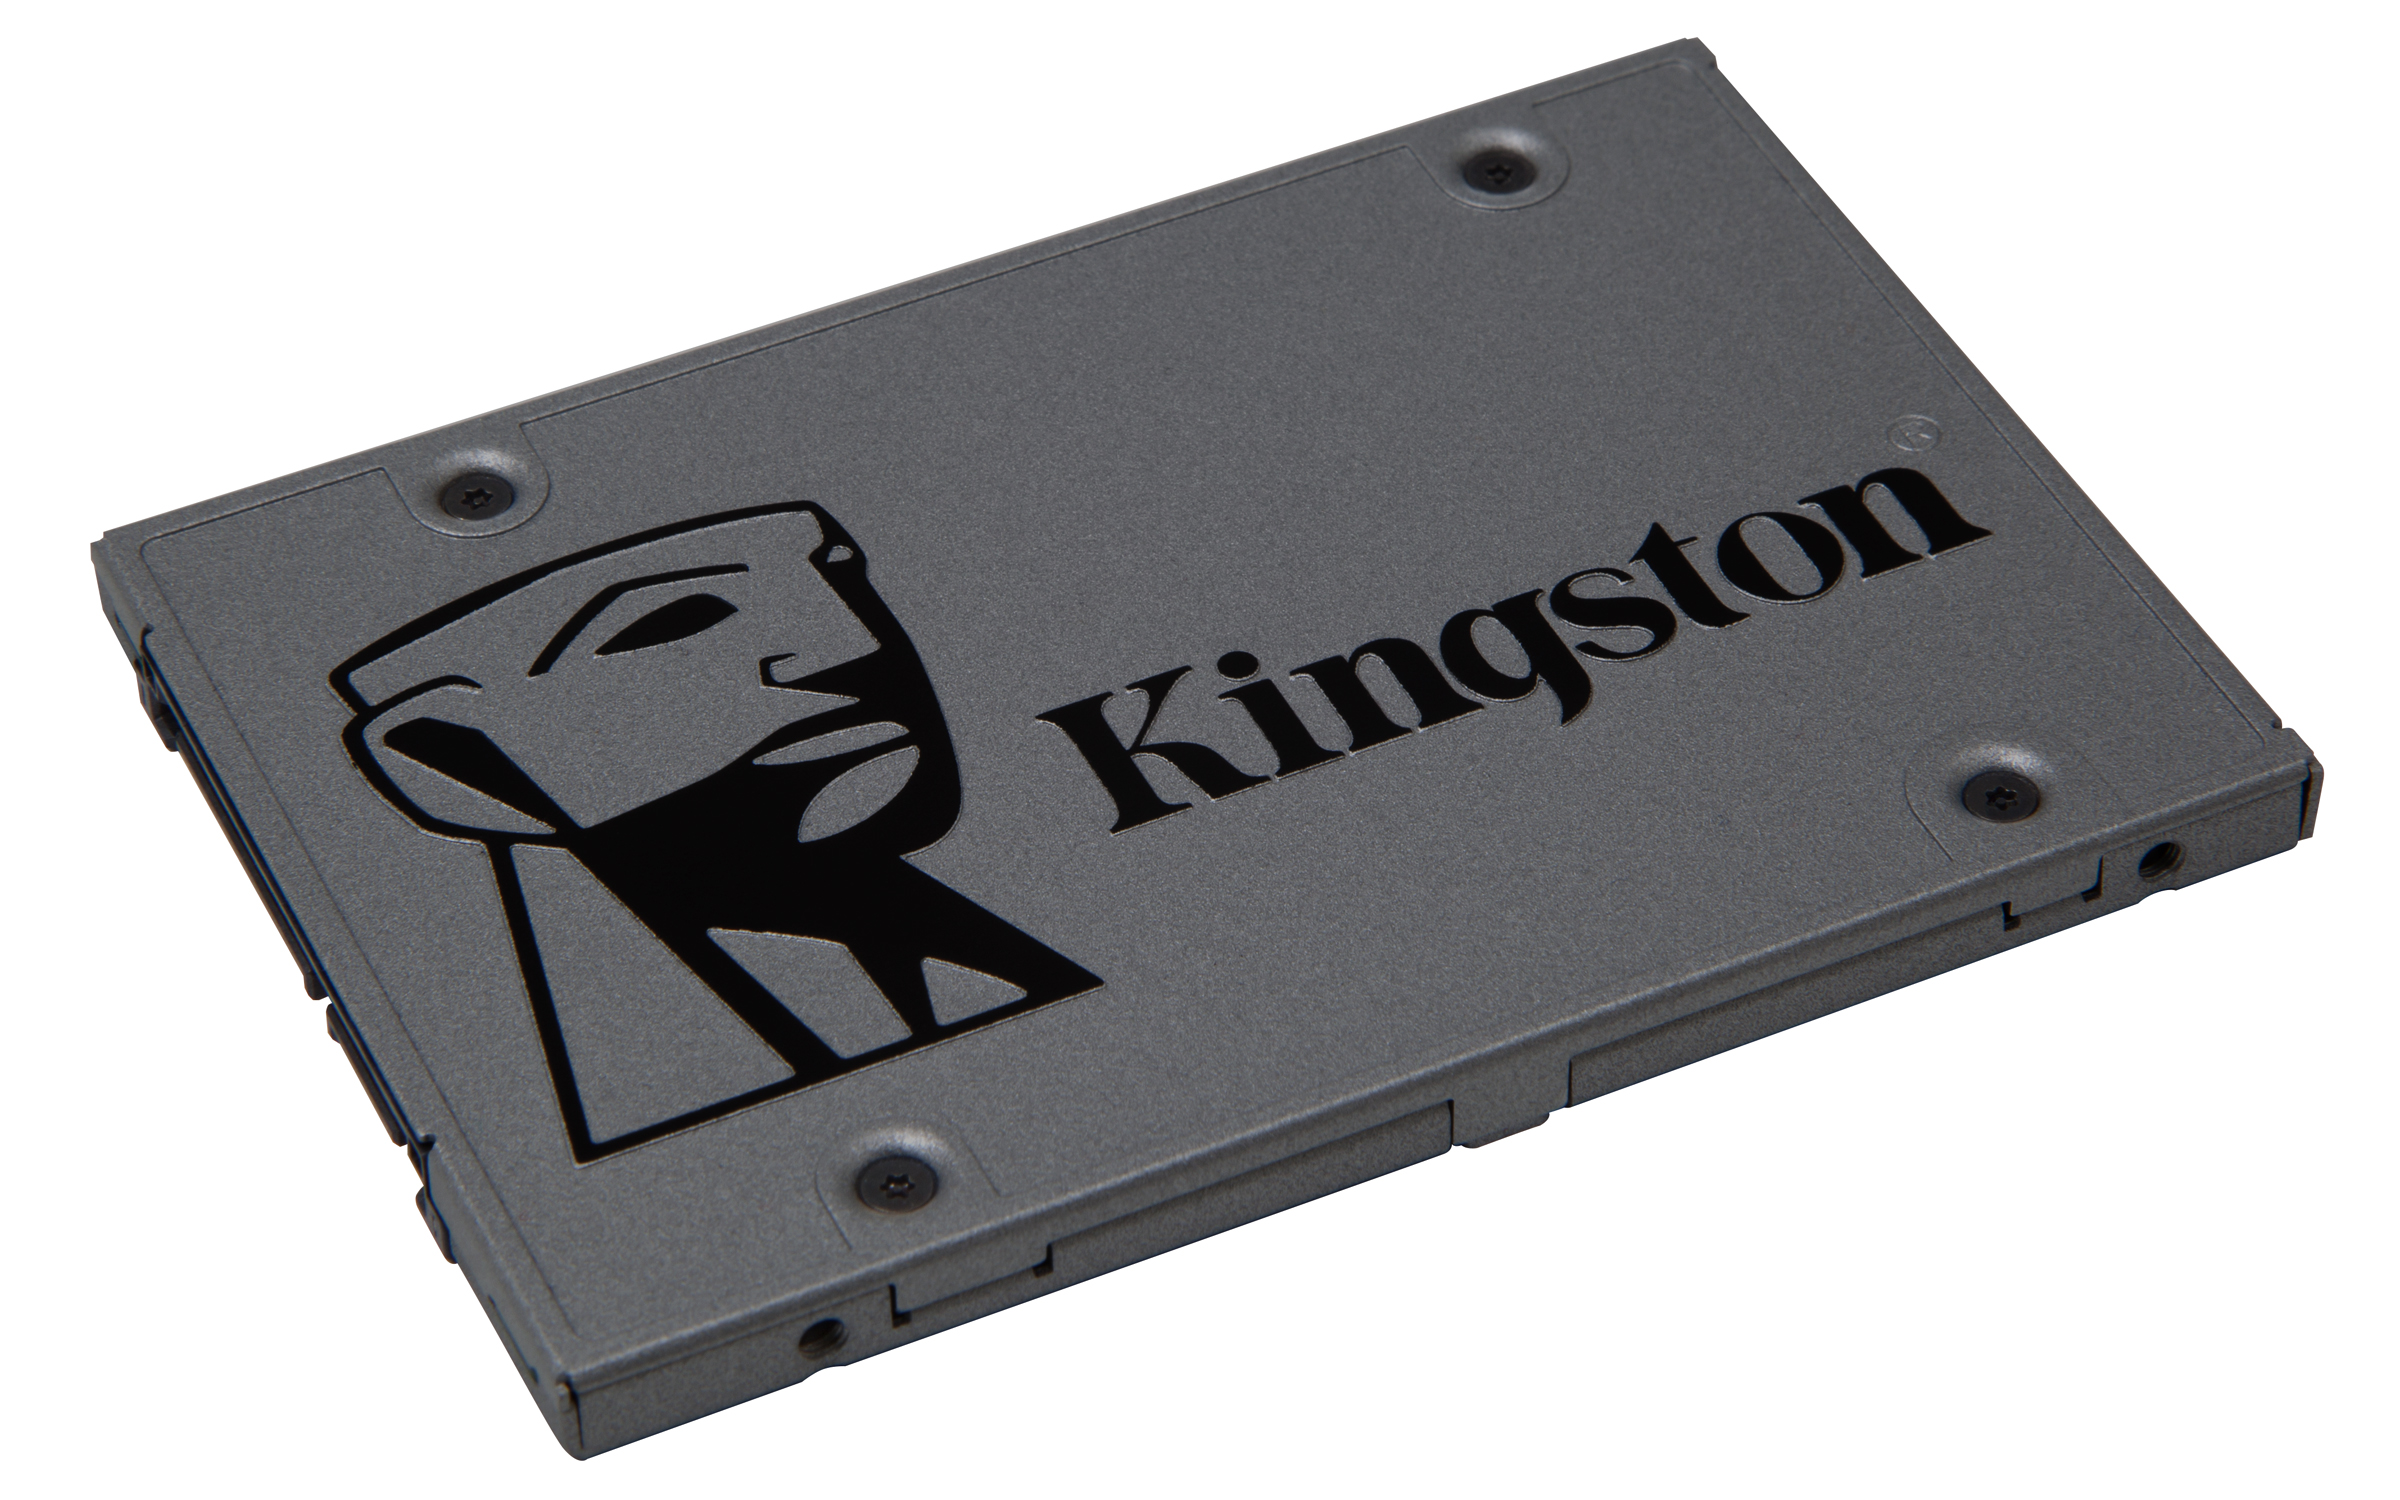 Kingston UV500 Solid State Drive